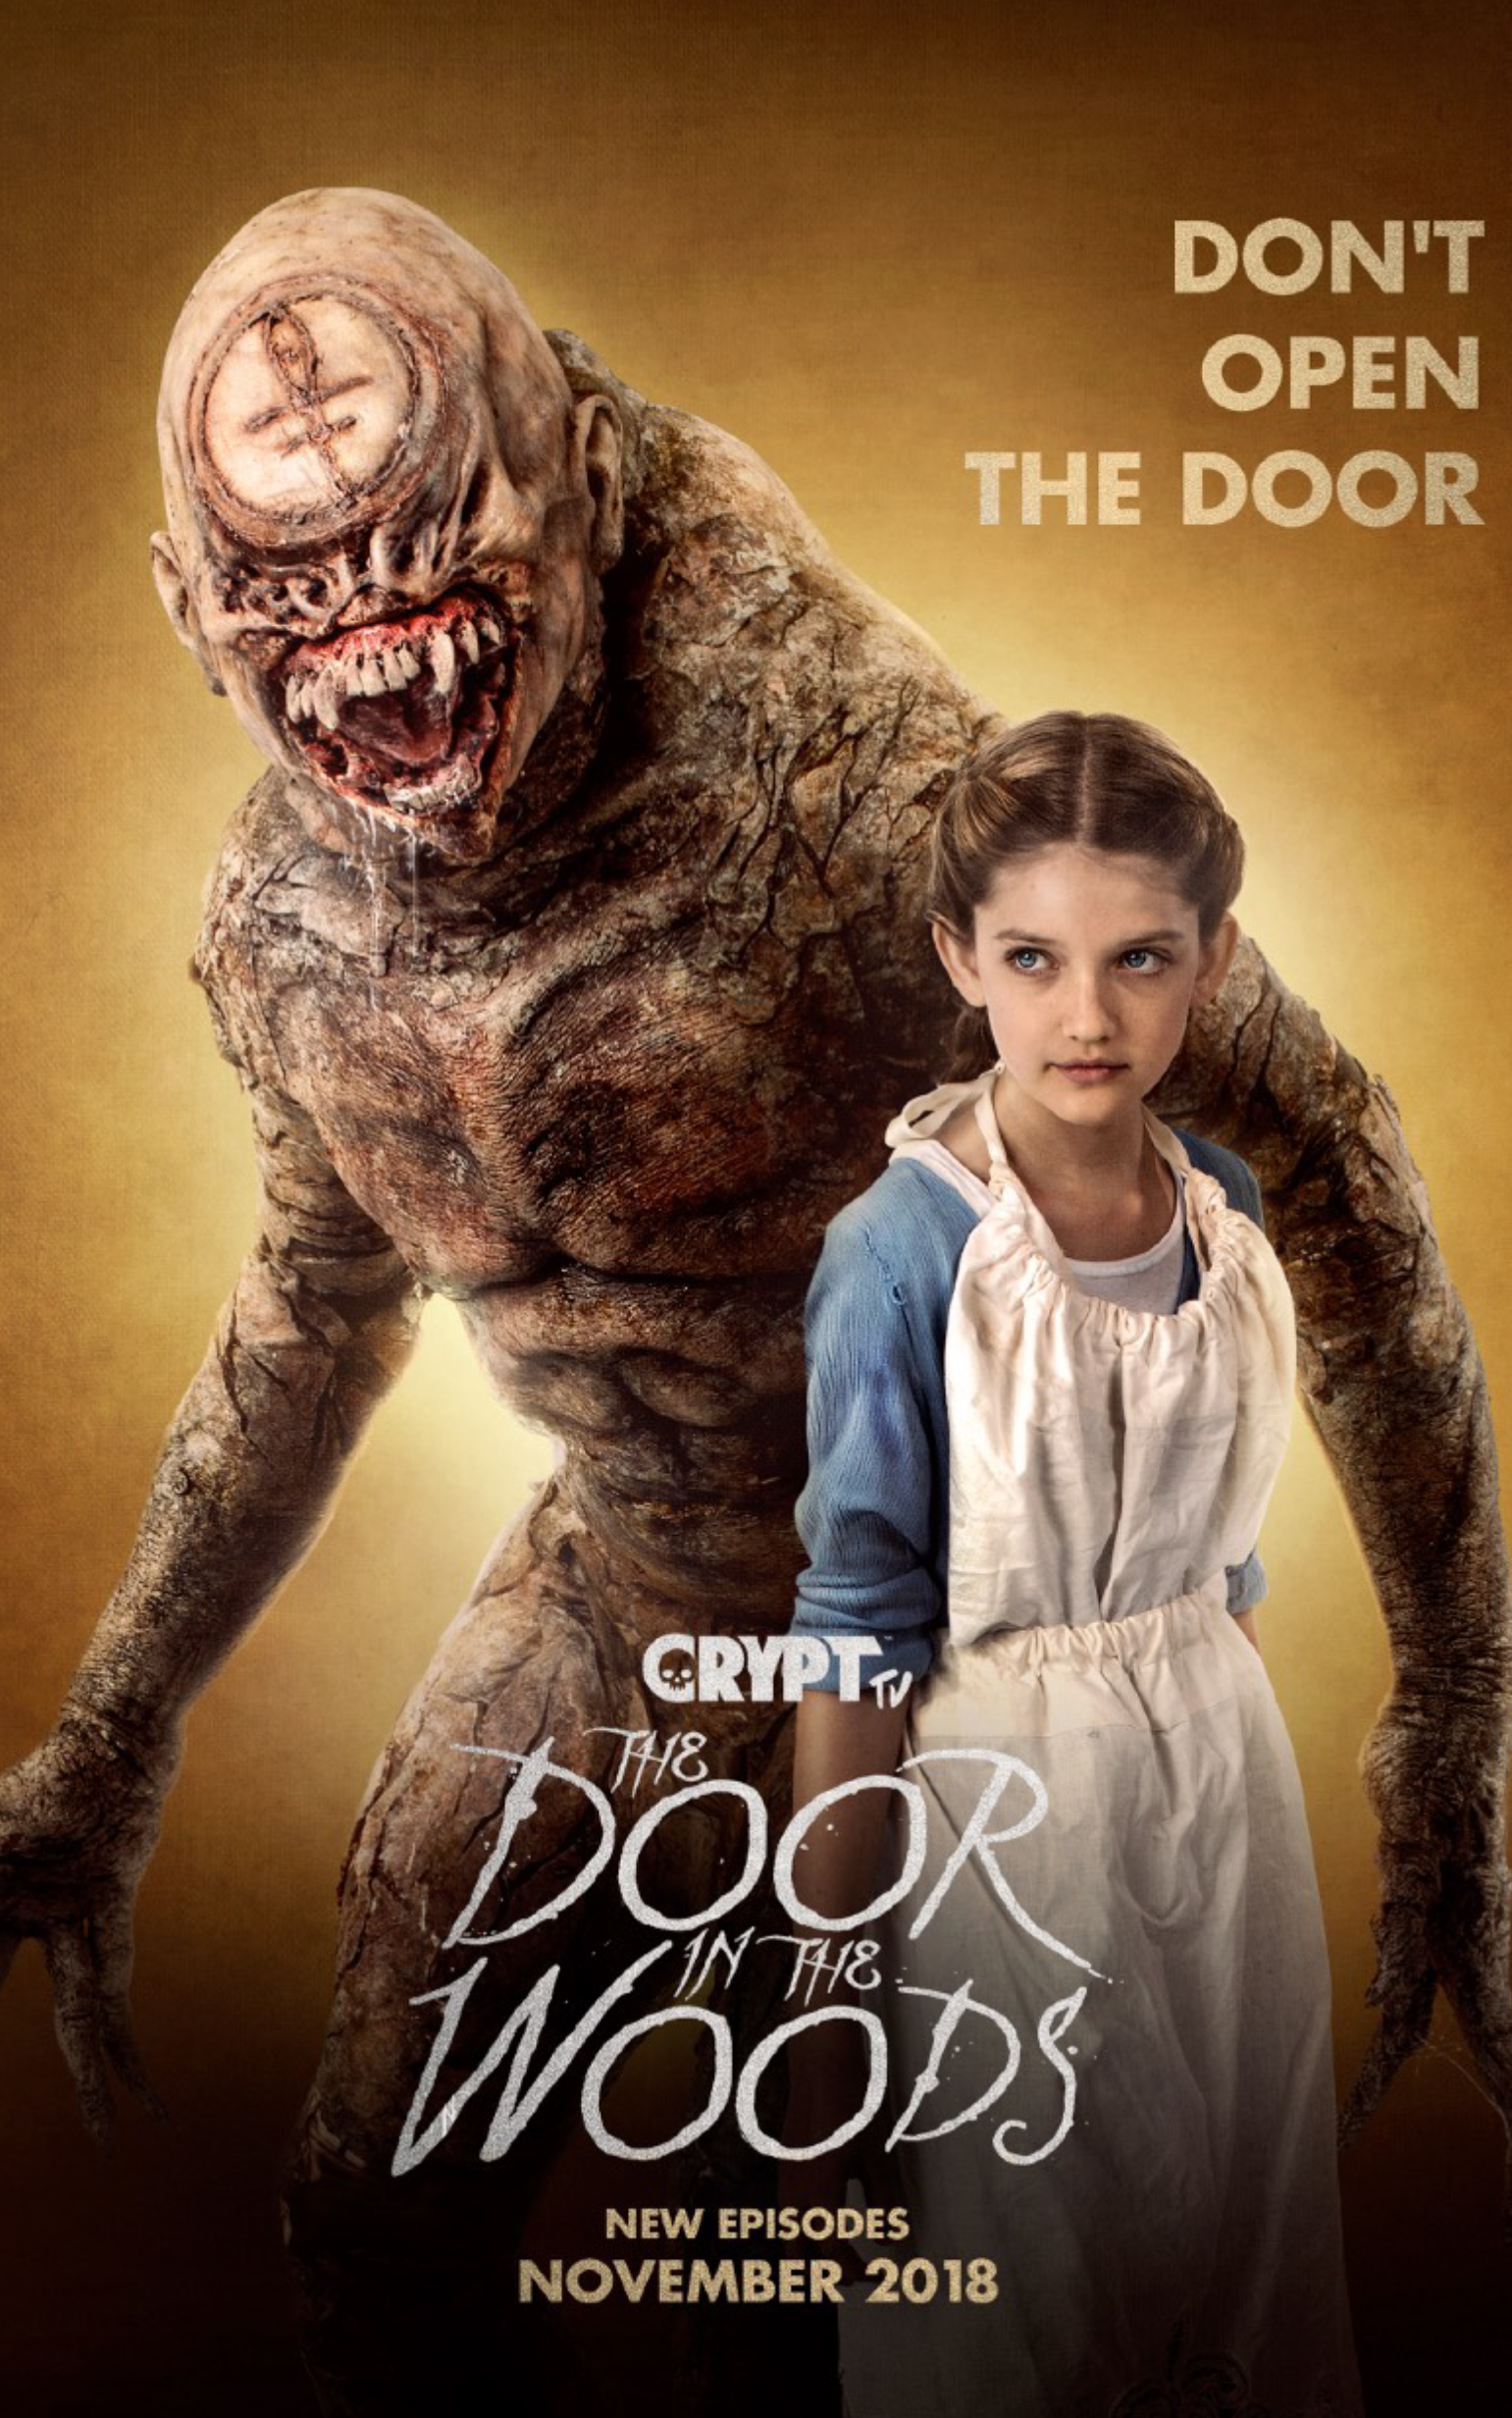 Crypt TV's The Door In The Woods